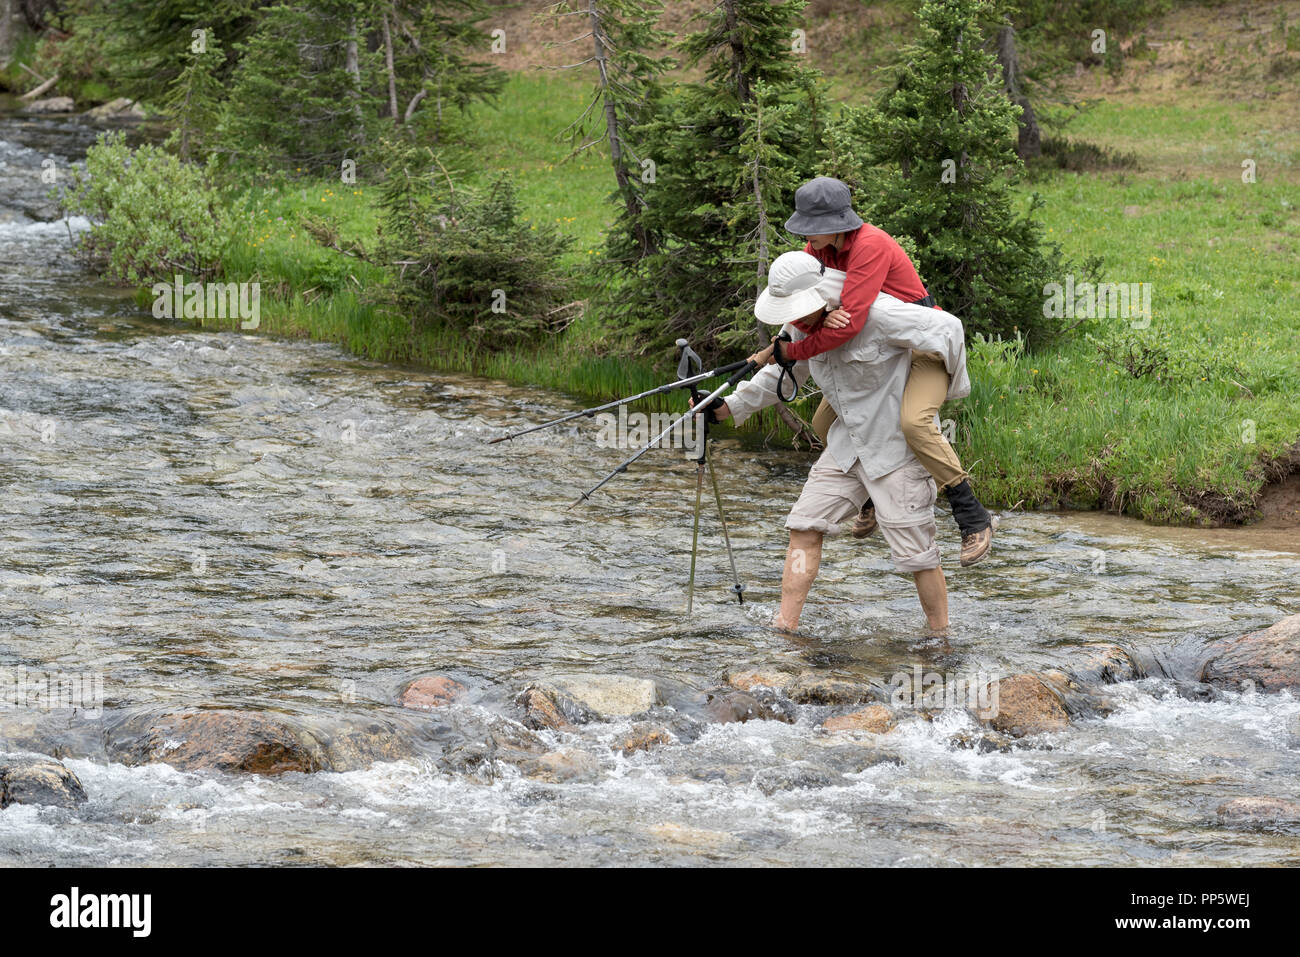 Man carrying woman across a stream on a backpack trip in Oregon's Wallowa Mountains. - Stock Image